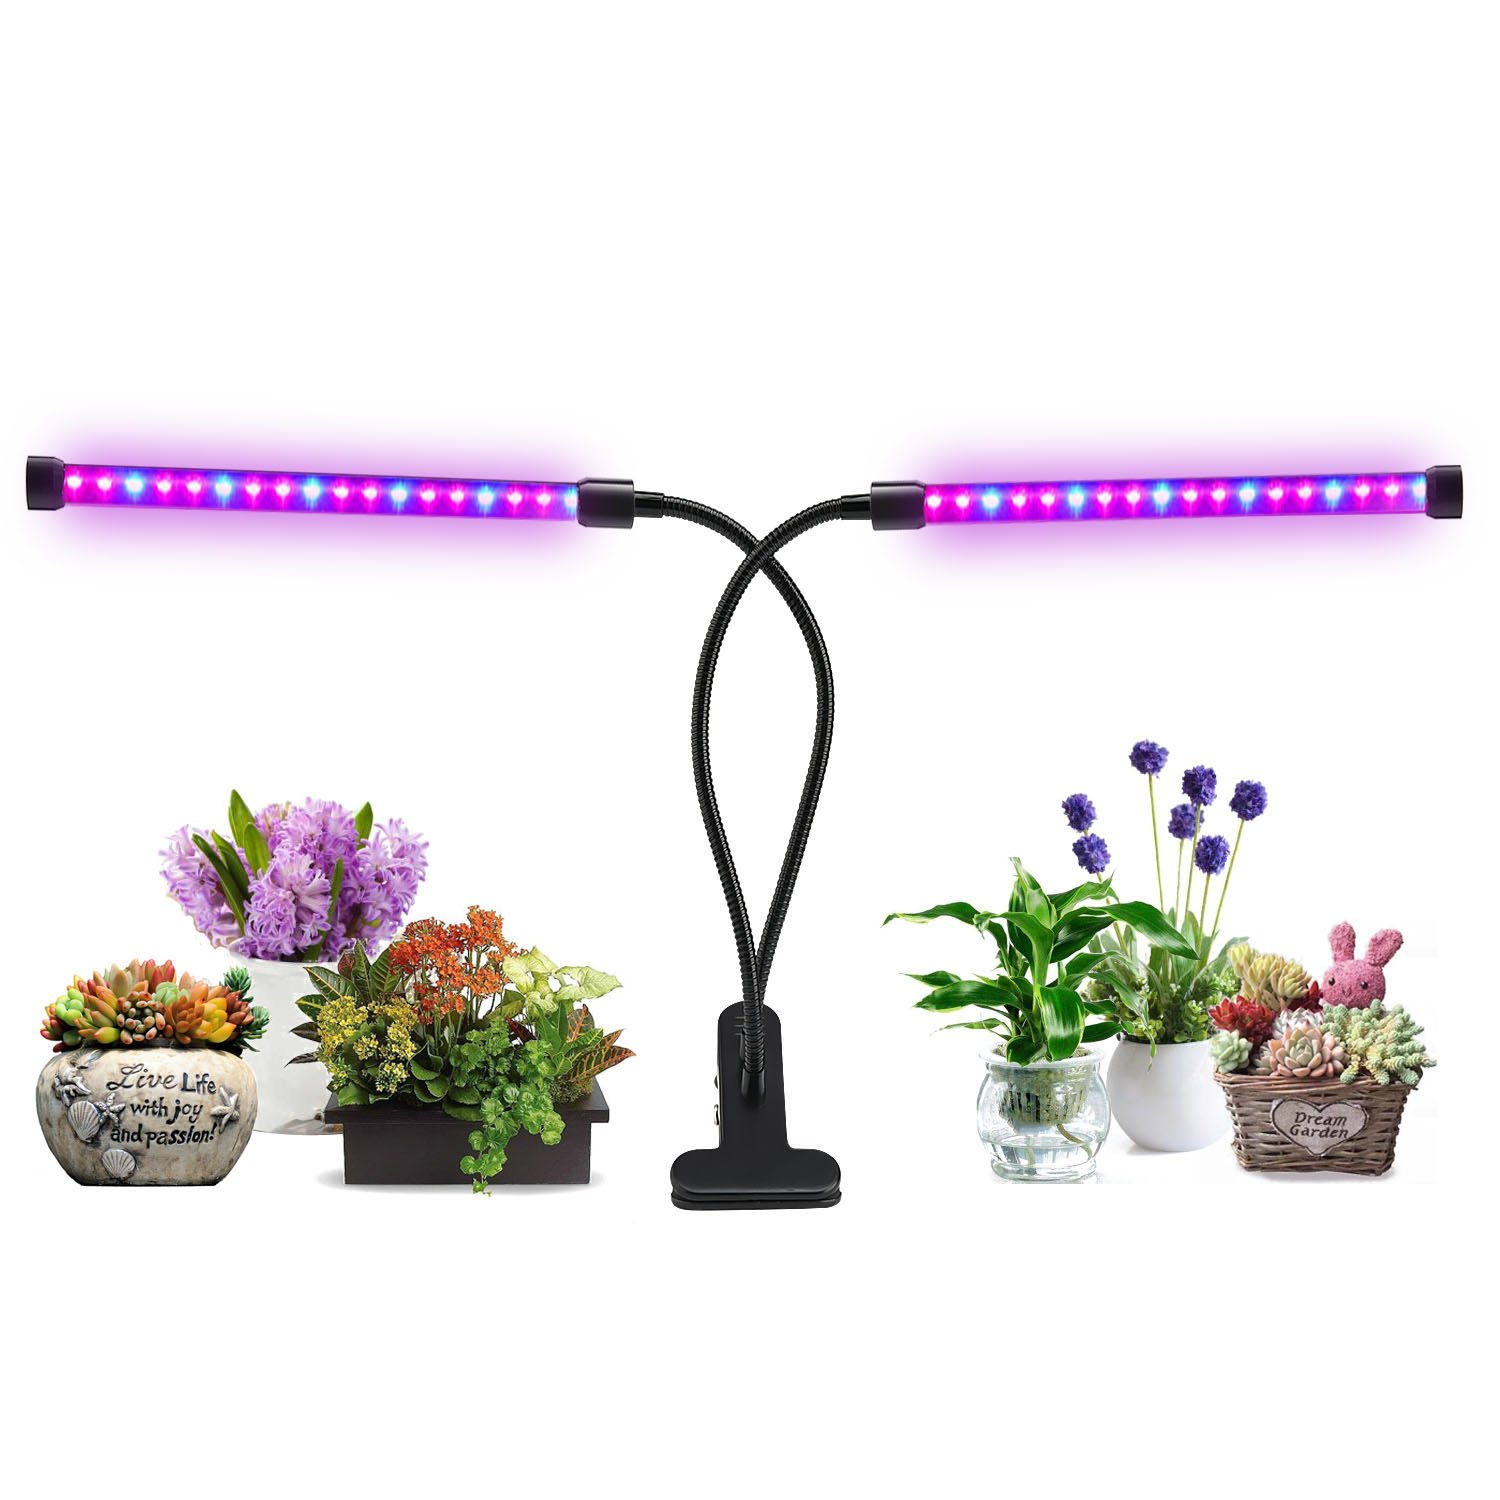 Lovebay Dual Head LED Plant Grow Light 2 Dimmable Levels Grow Lamp Bulbs with Adjustable 360° Gooseneck for Indoor Plants Hydroponics Greenhouse Garden Home Office, Timer Connectable [2018 Upgraded] by Lovebay